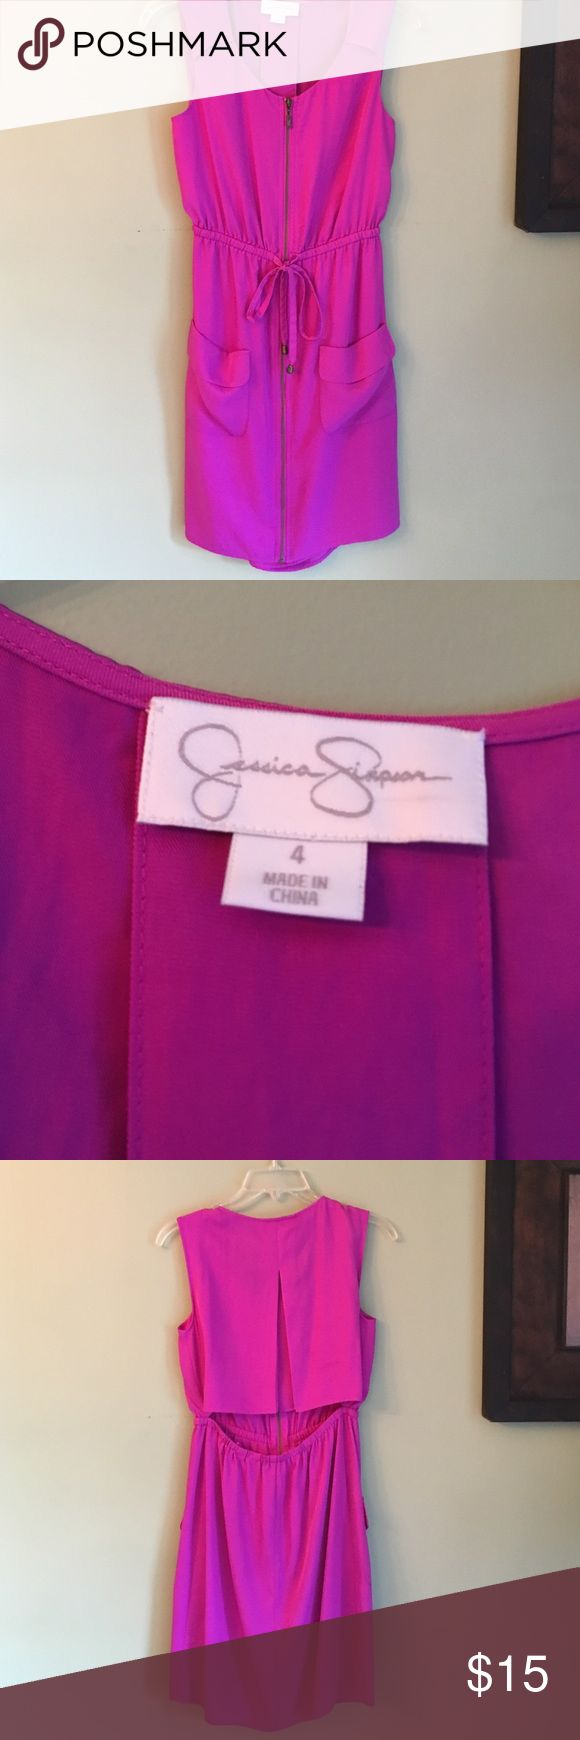 JESSICA SIMPSON PURPLE ZIP UP DRESS JESSICA SIMPSON PURPLE ZIP UP DRESS. Open back detail. Zip up with front pockets and tie. Looks pink in the pictures but more of a purple color. 35 inches from top to bottom. Jessica Simpson Dresses Mini